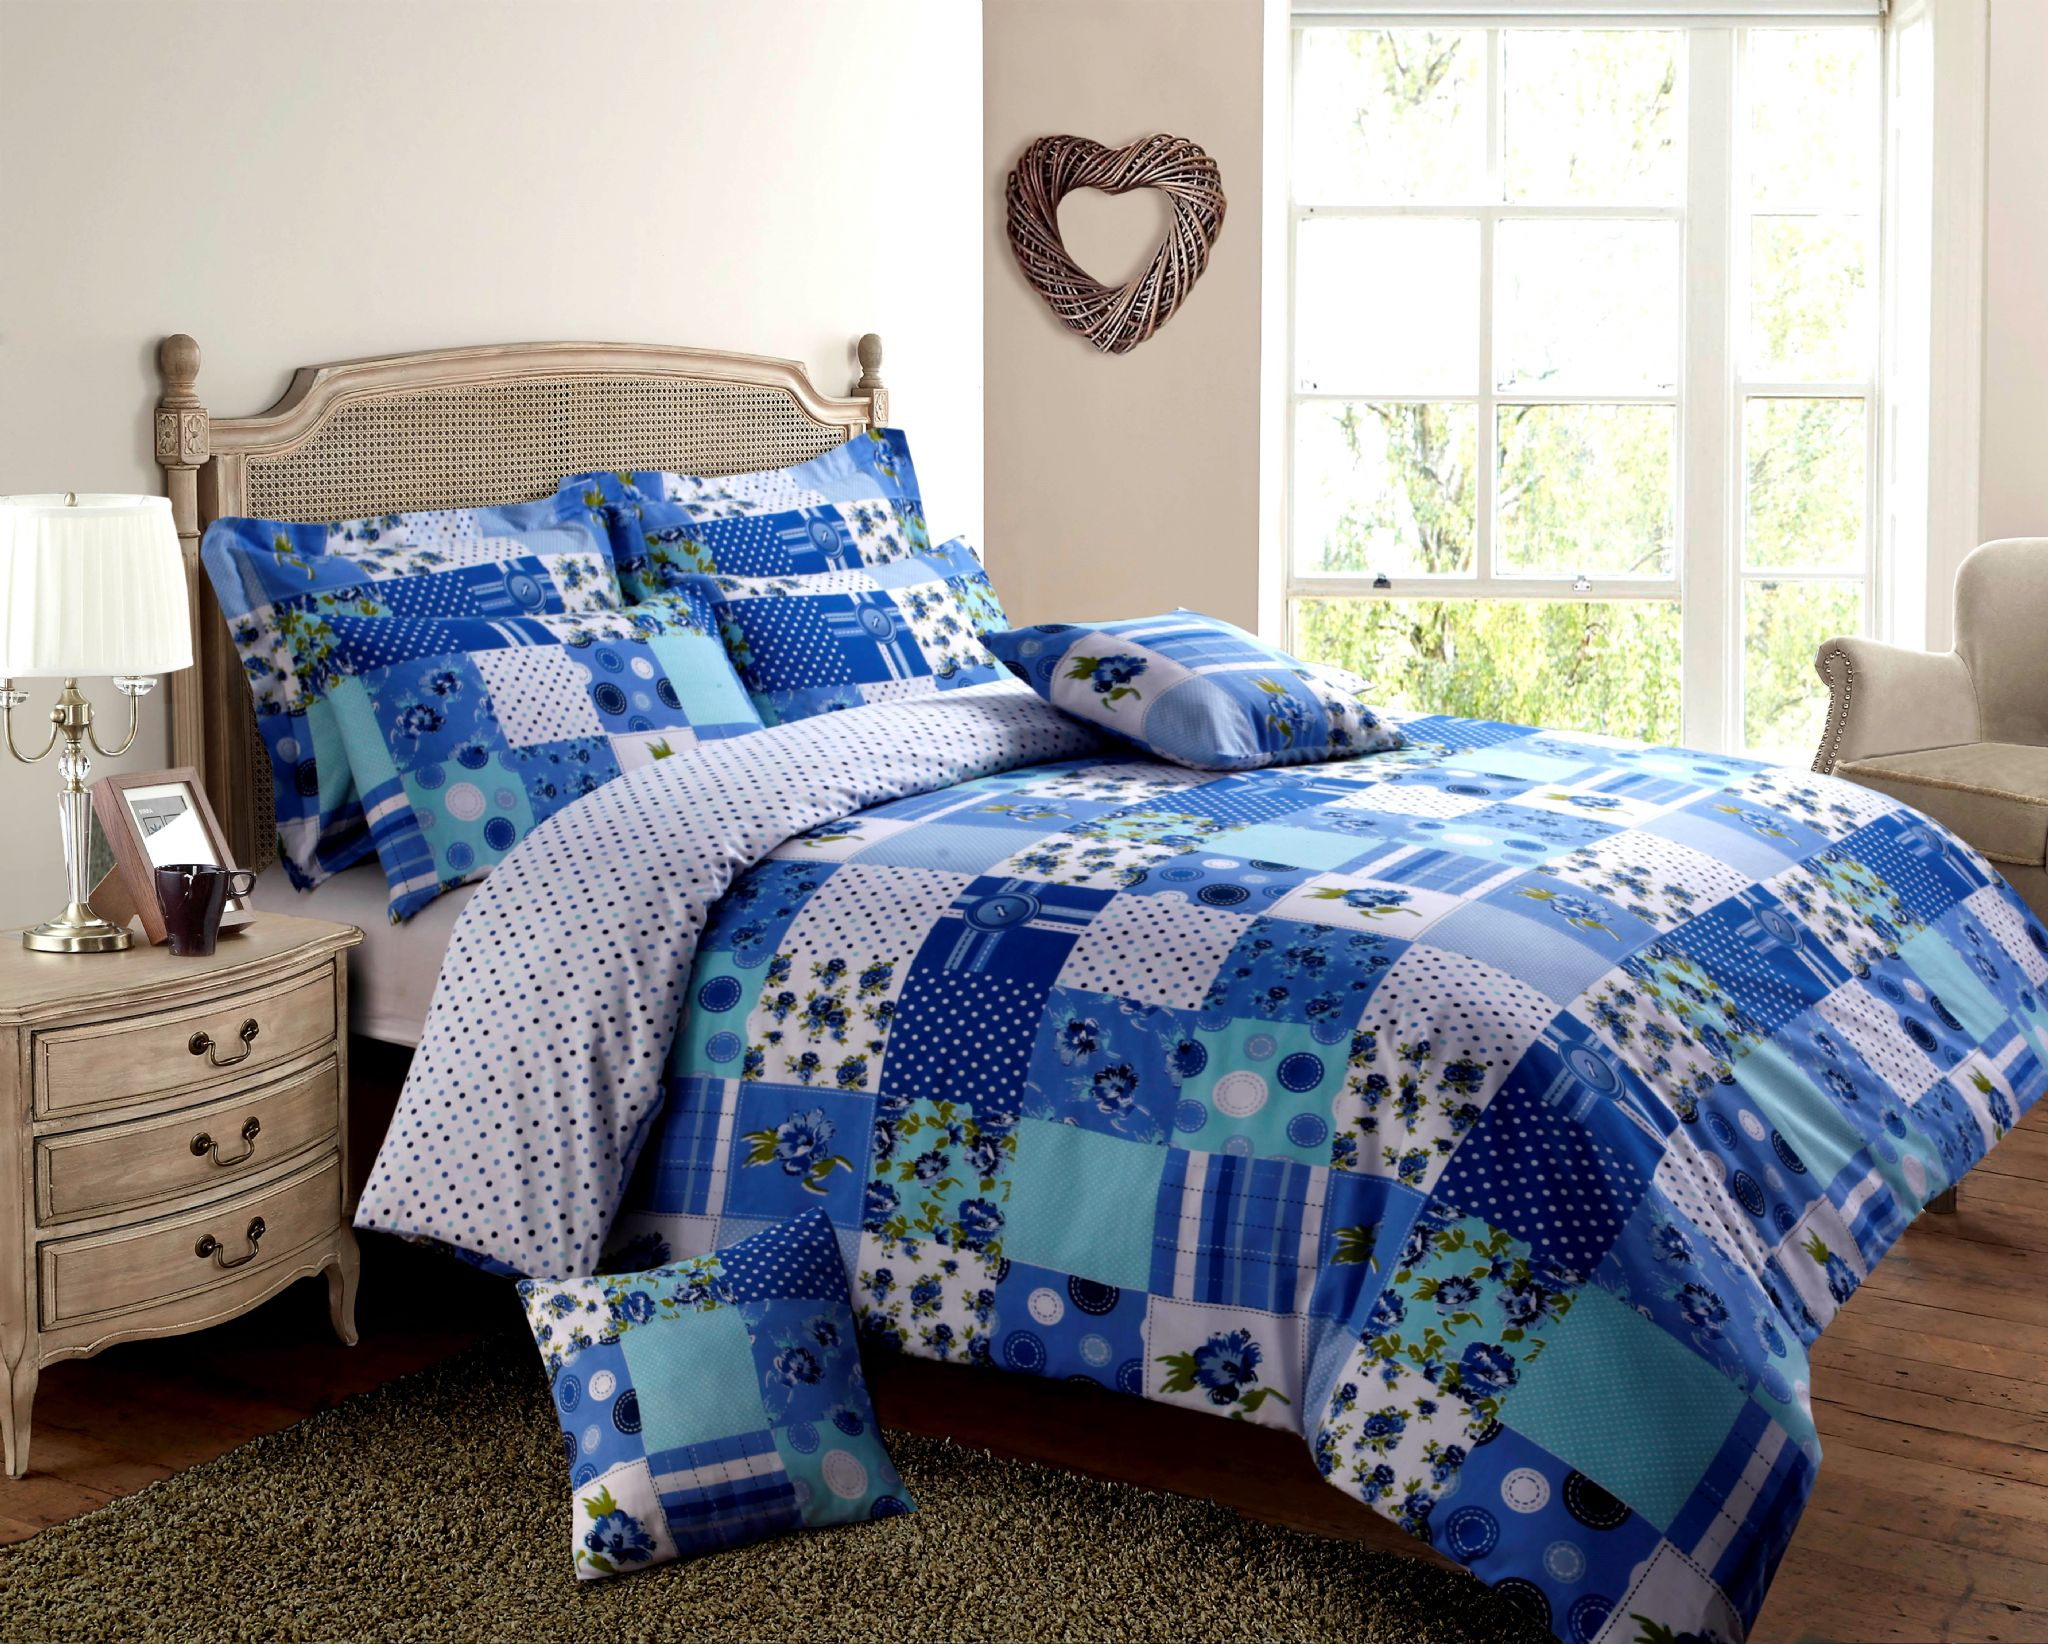 value city furniture sofa bed replacement cushion covers for dfs sofas blue & turquoise colour patchwork design reversible ...